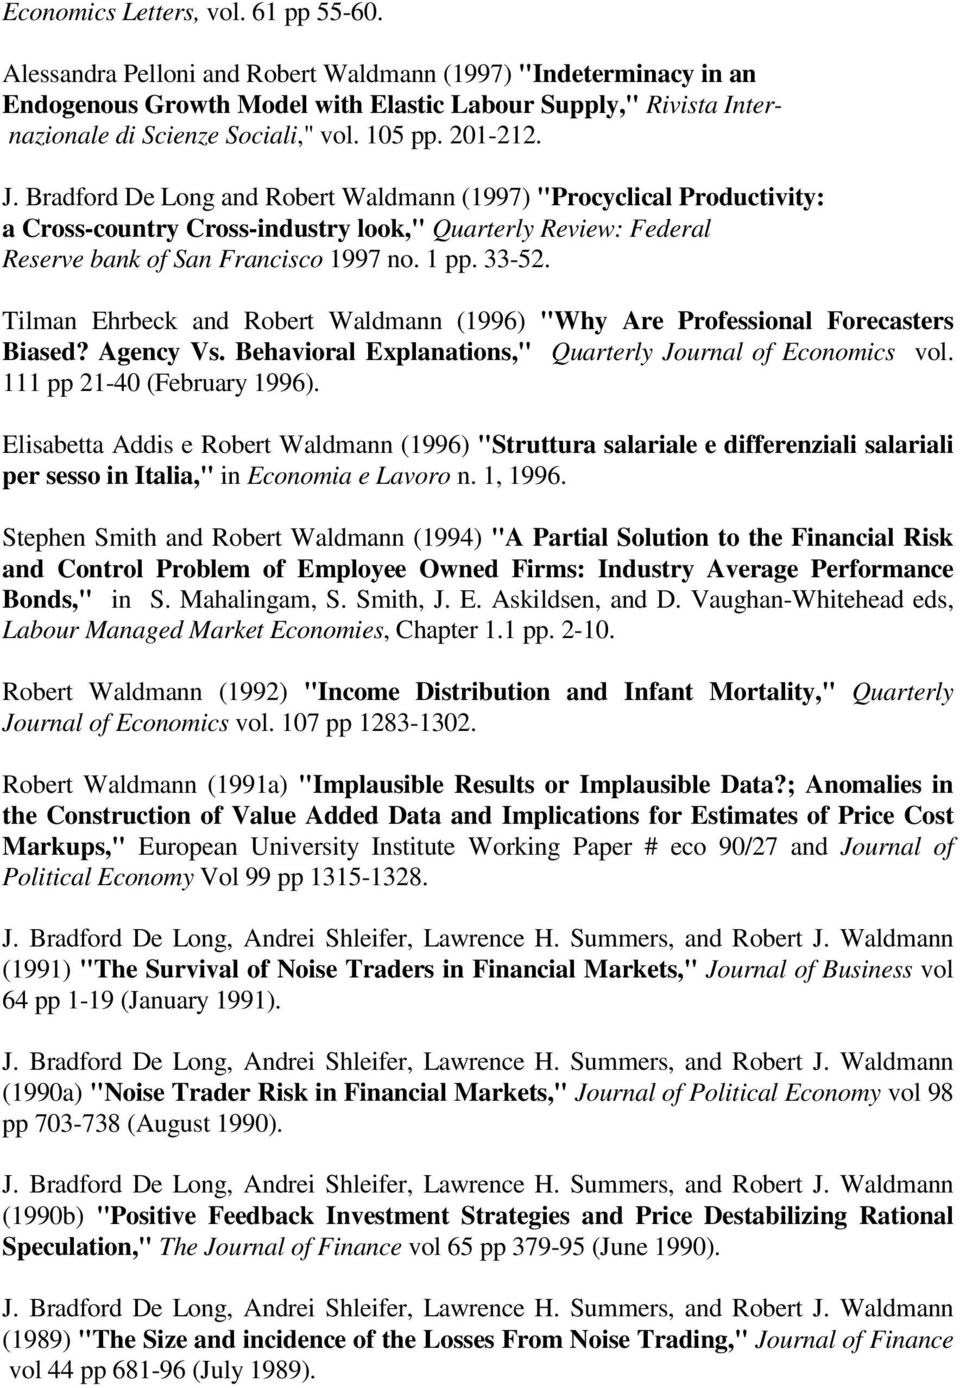 "Bradford De Long and Robert Waldmann (1997) ""Procyclical Productivity: a Cross-country Cross-industry look,"" Quarterly Review: Federal Reserve bank of San Francisco 1997 no. 1 pp. 33-52."